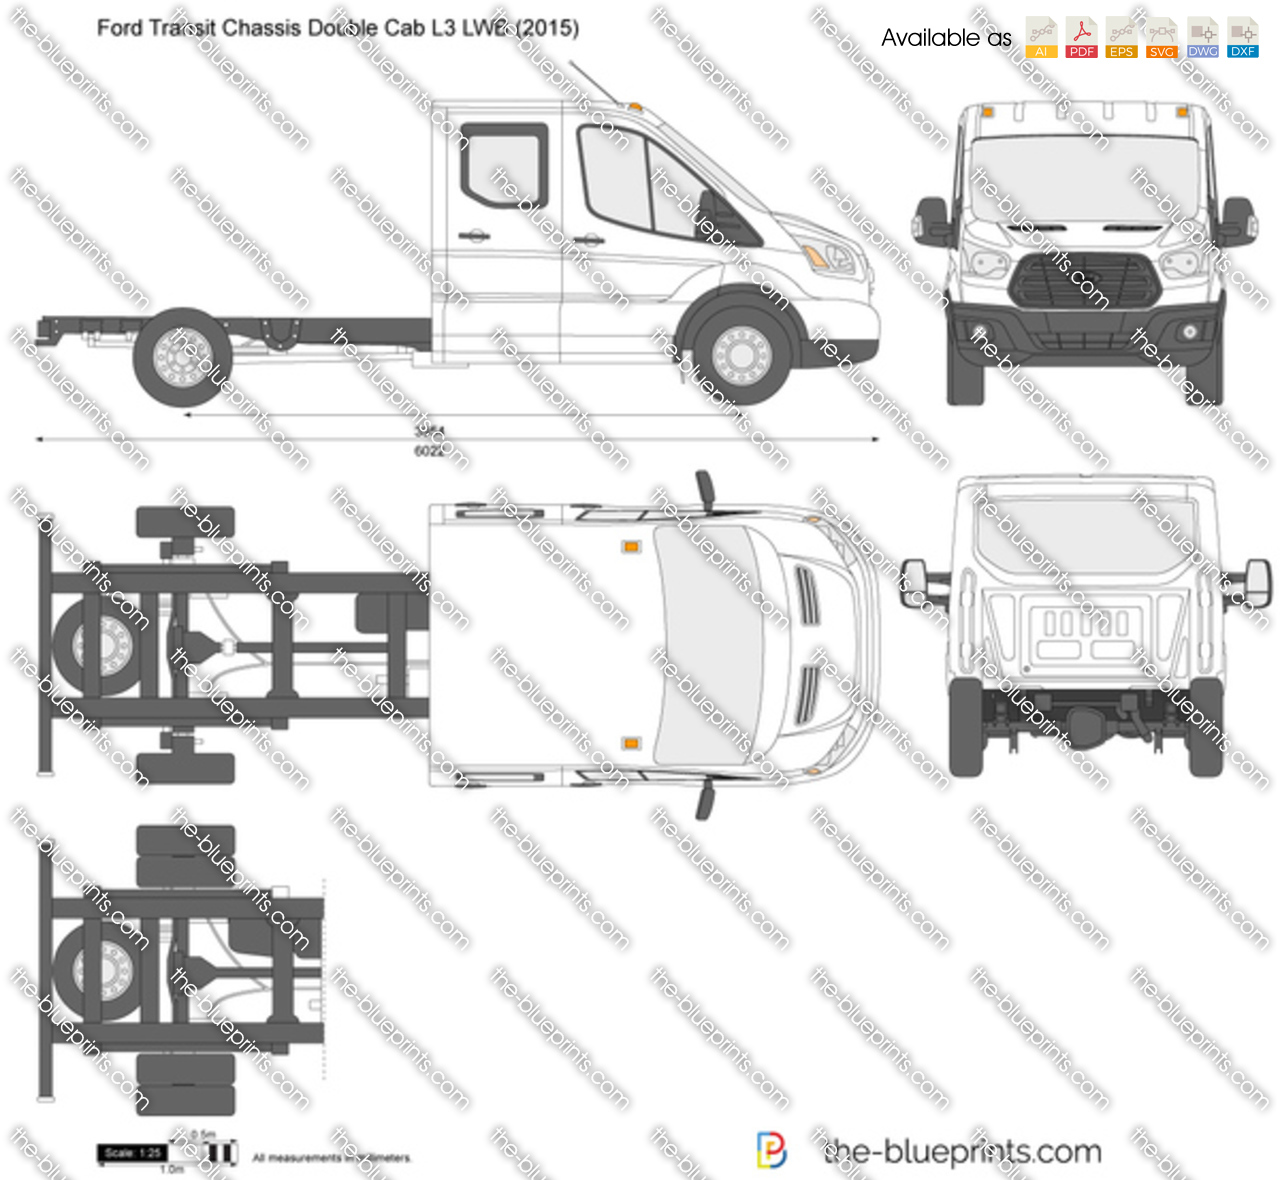 Ford Transit 350 Lwb Specificaties: Ford Transit Chassis Double Cab L3 LWB Vector Drawing